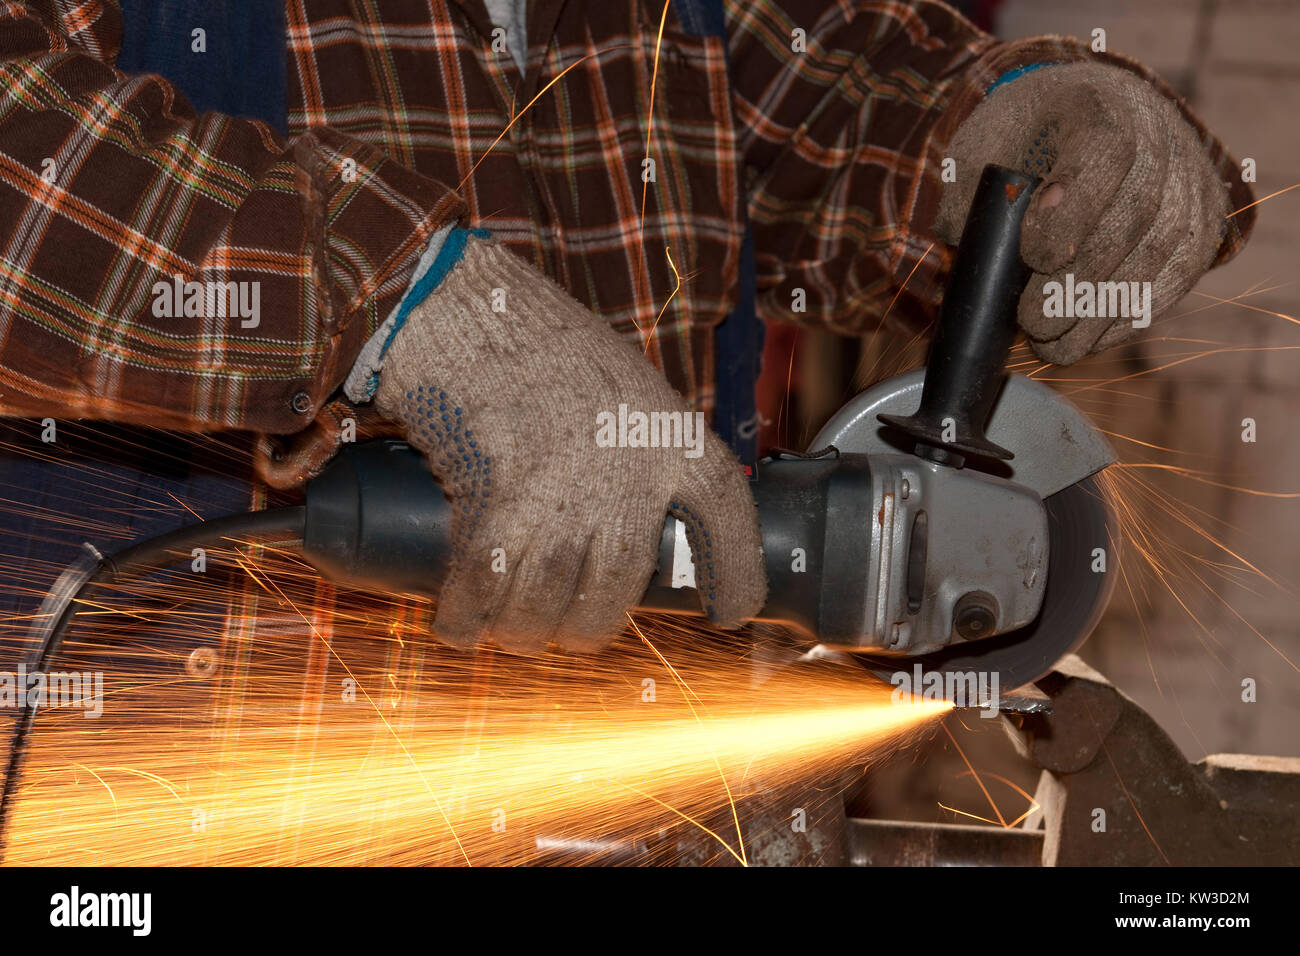 Blue collar worker working with an angle grinder - Stock Image